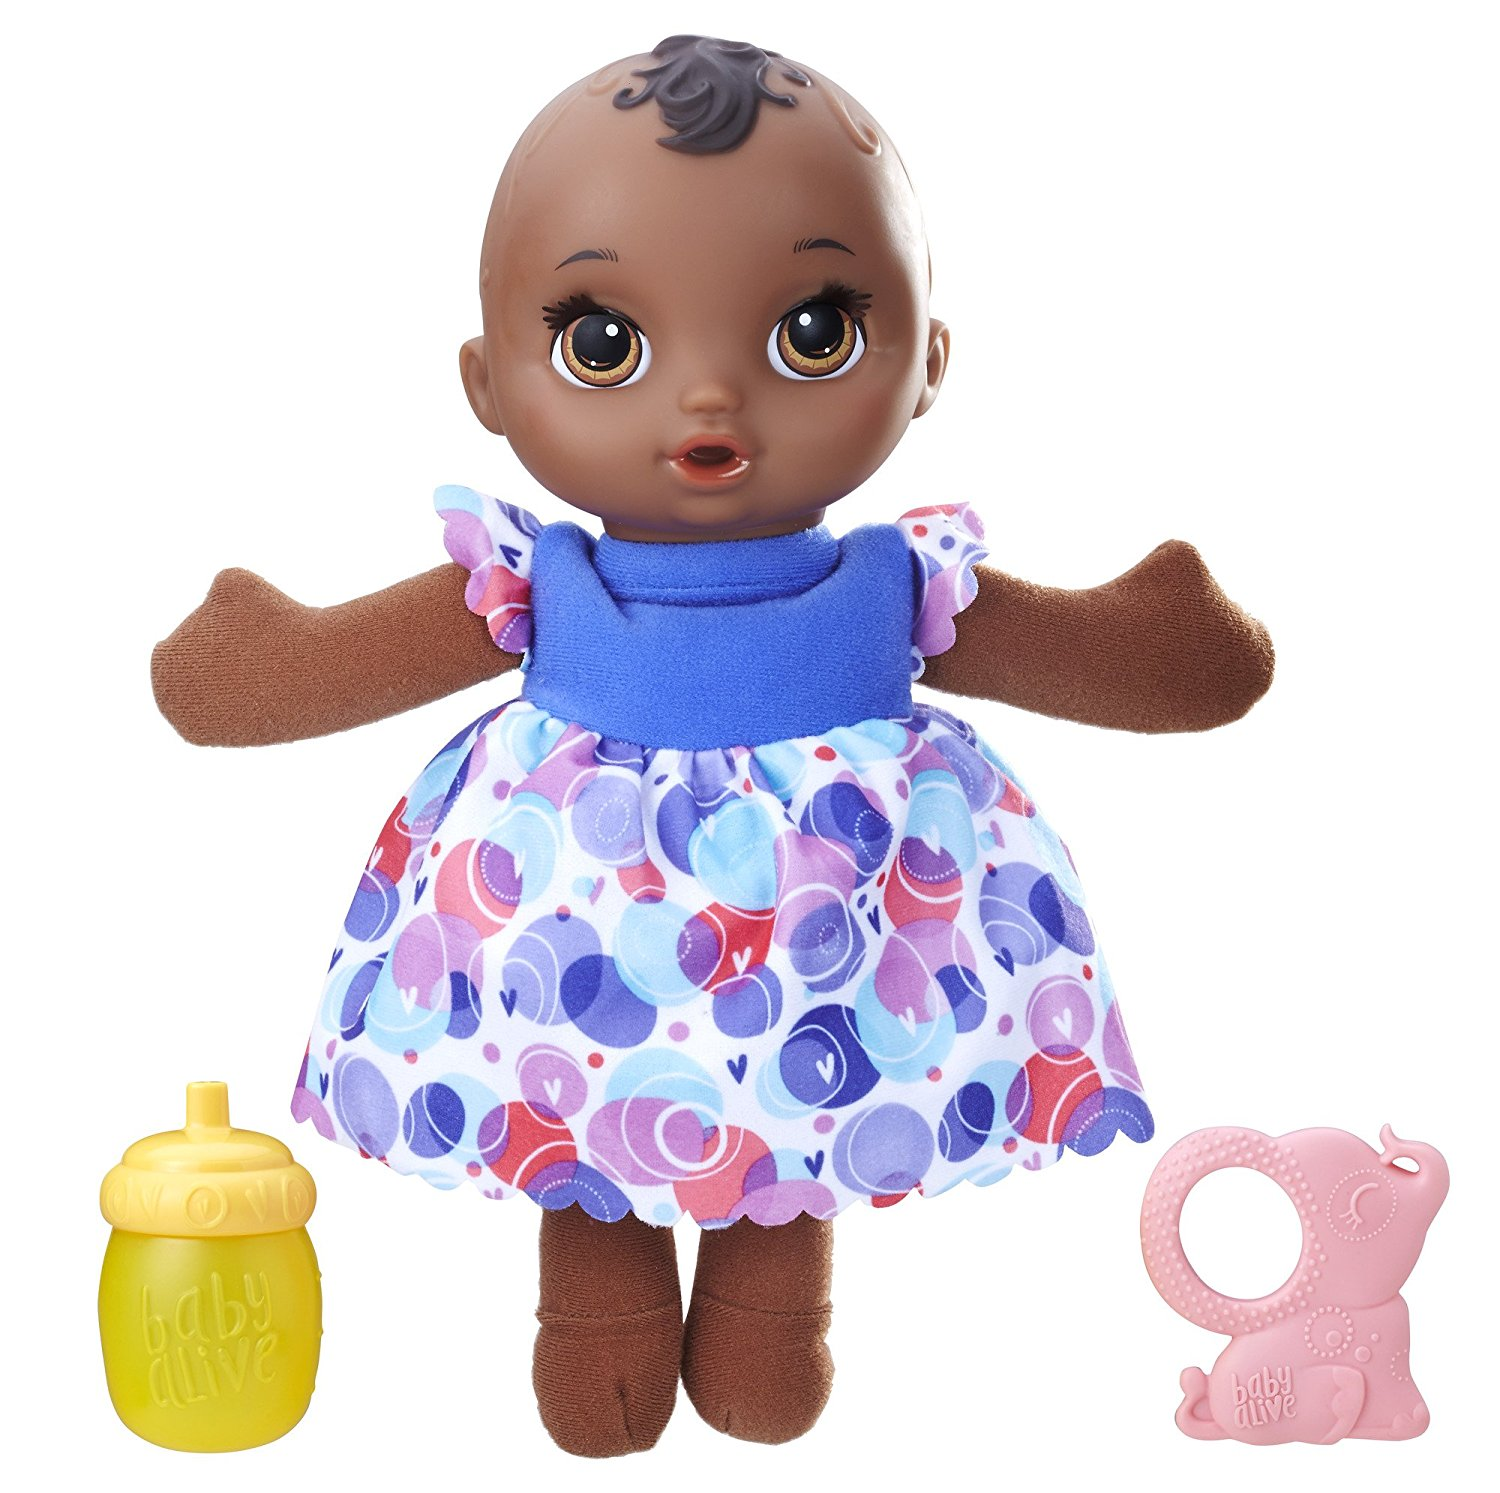 Lil Slumbers African American Eyes Close When Doll Is